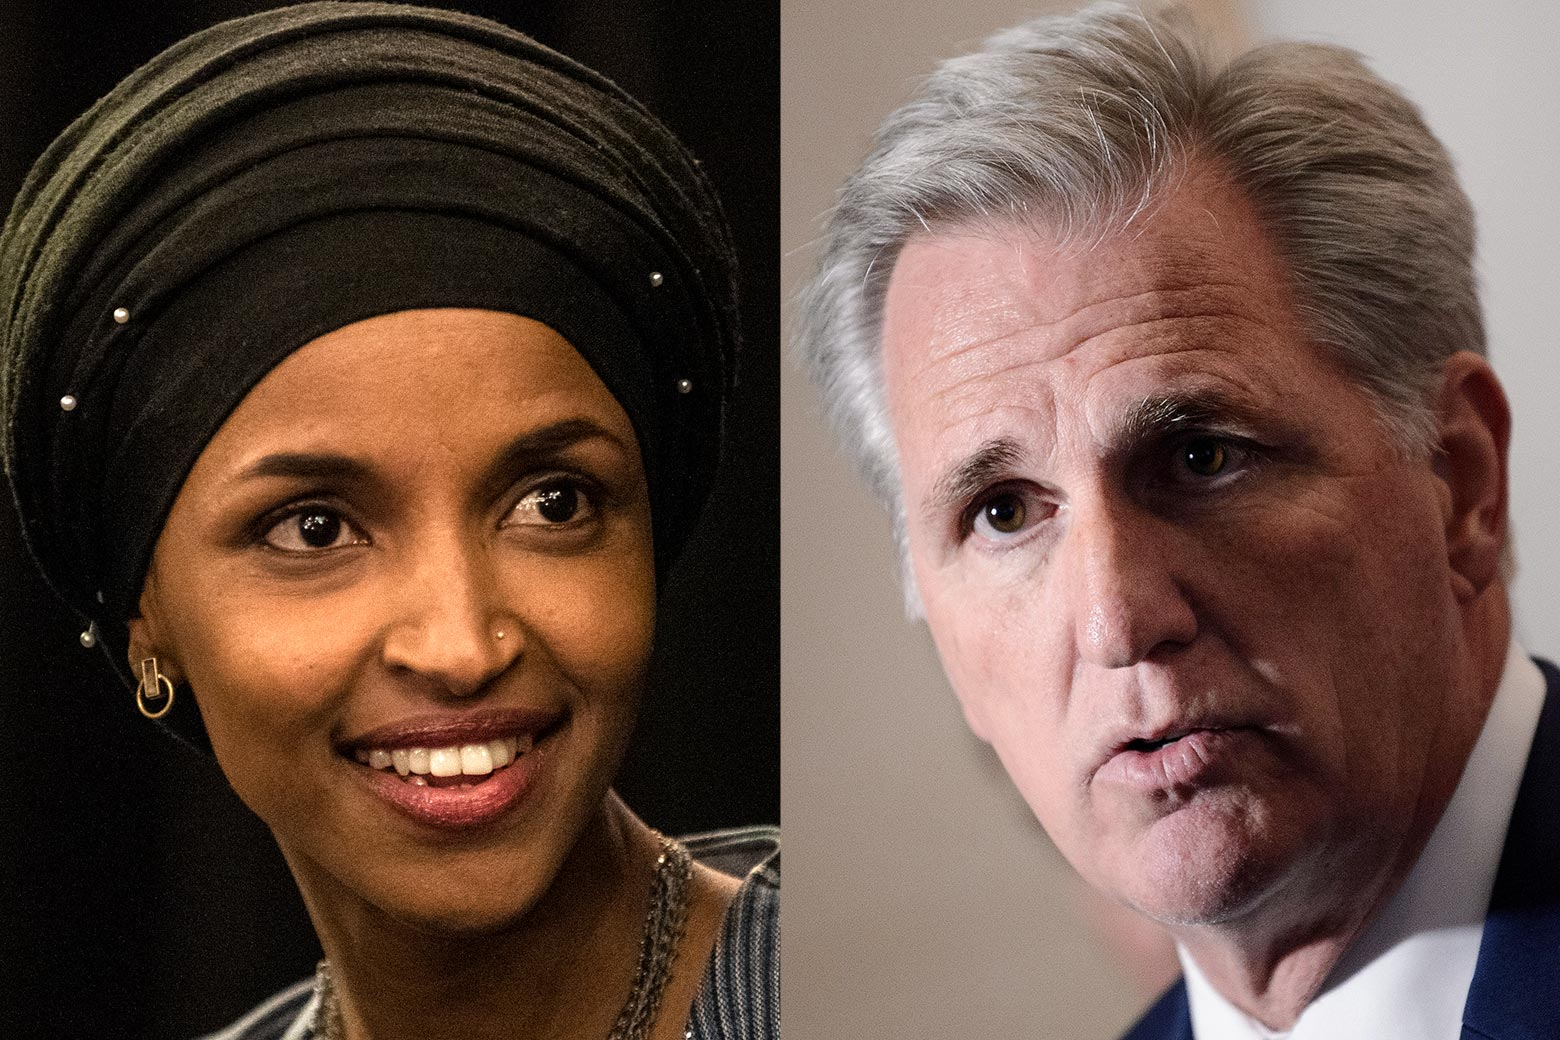 Minnesota Rep. Ilhan Omar and House Minority Leader Kevin McCarthy.